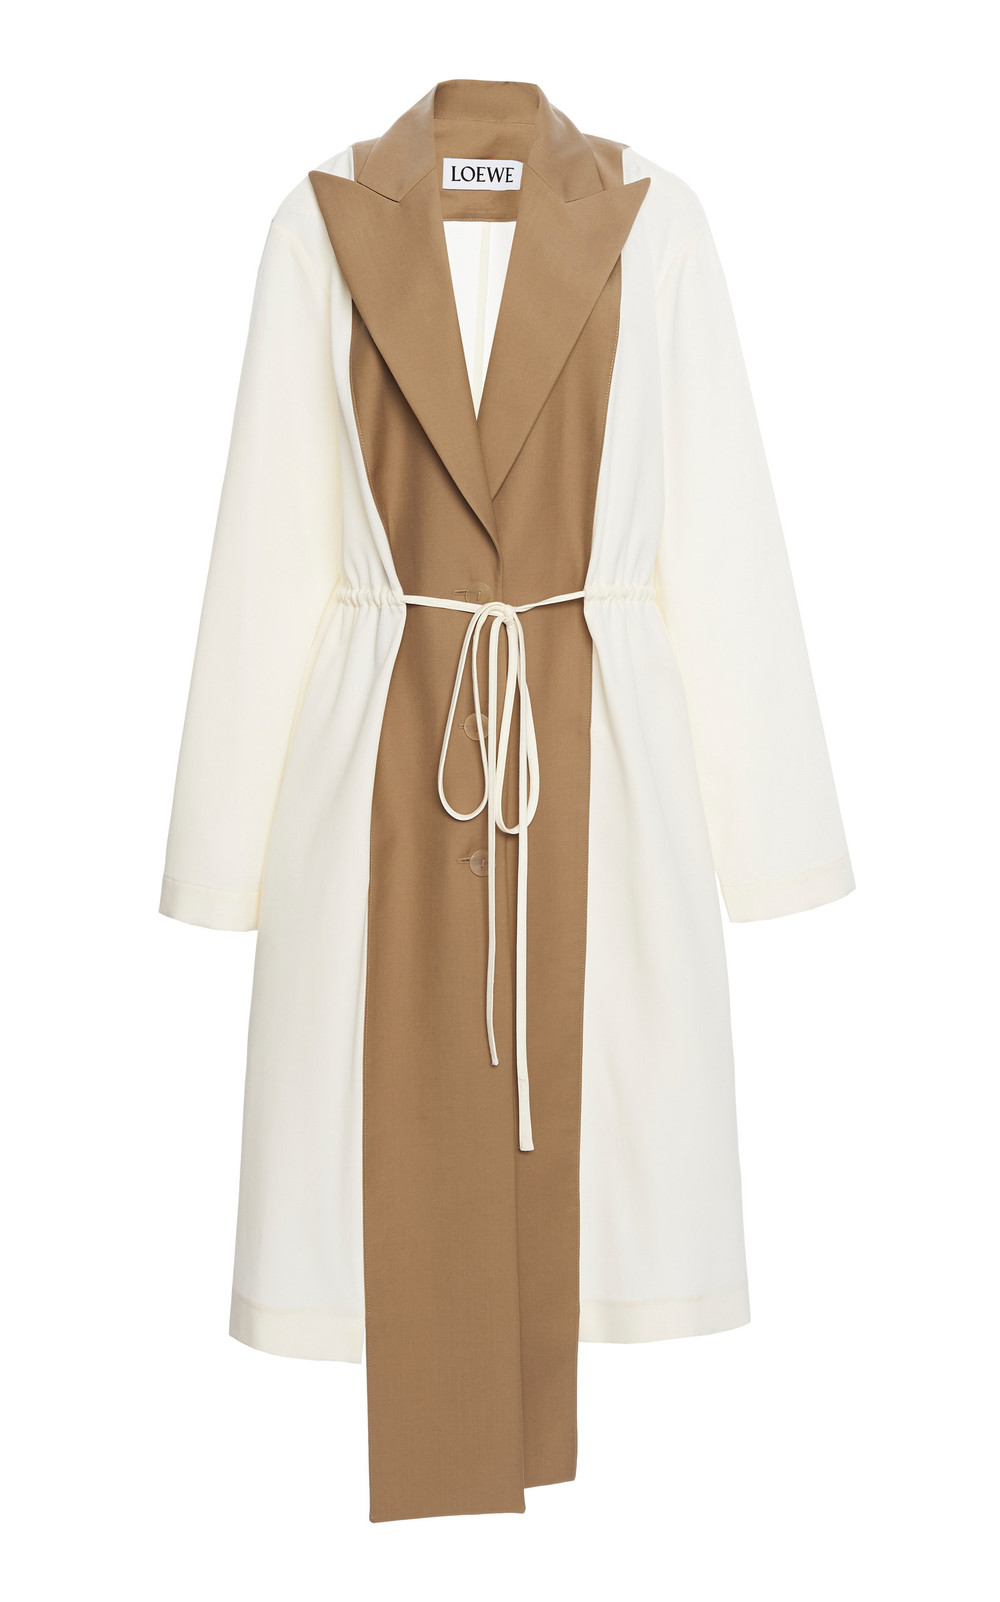 Loewe Deconstructed Belted Wool Coat Size: 34 in neutral